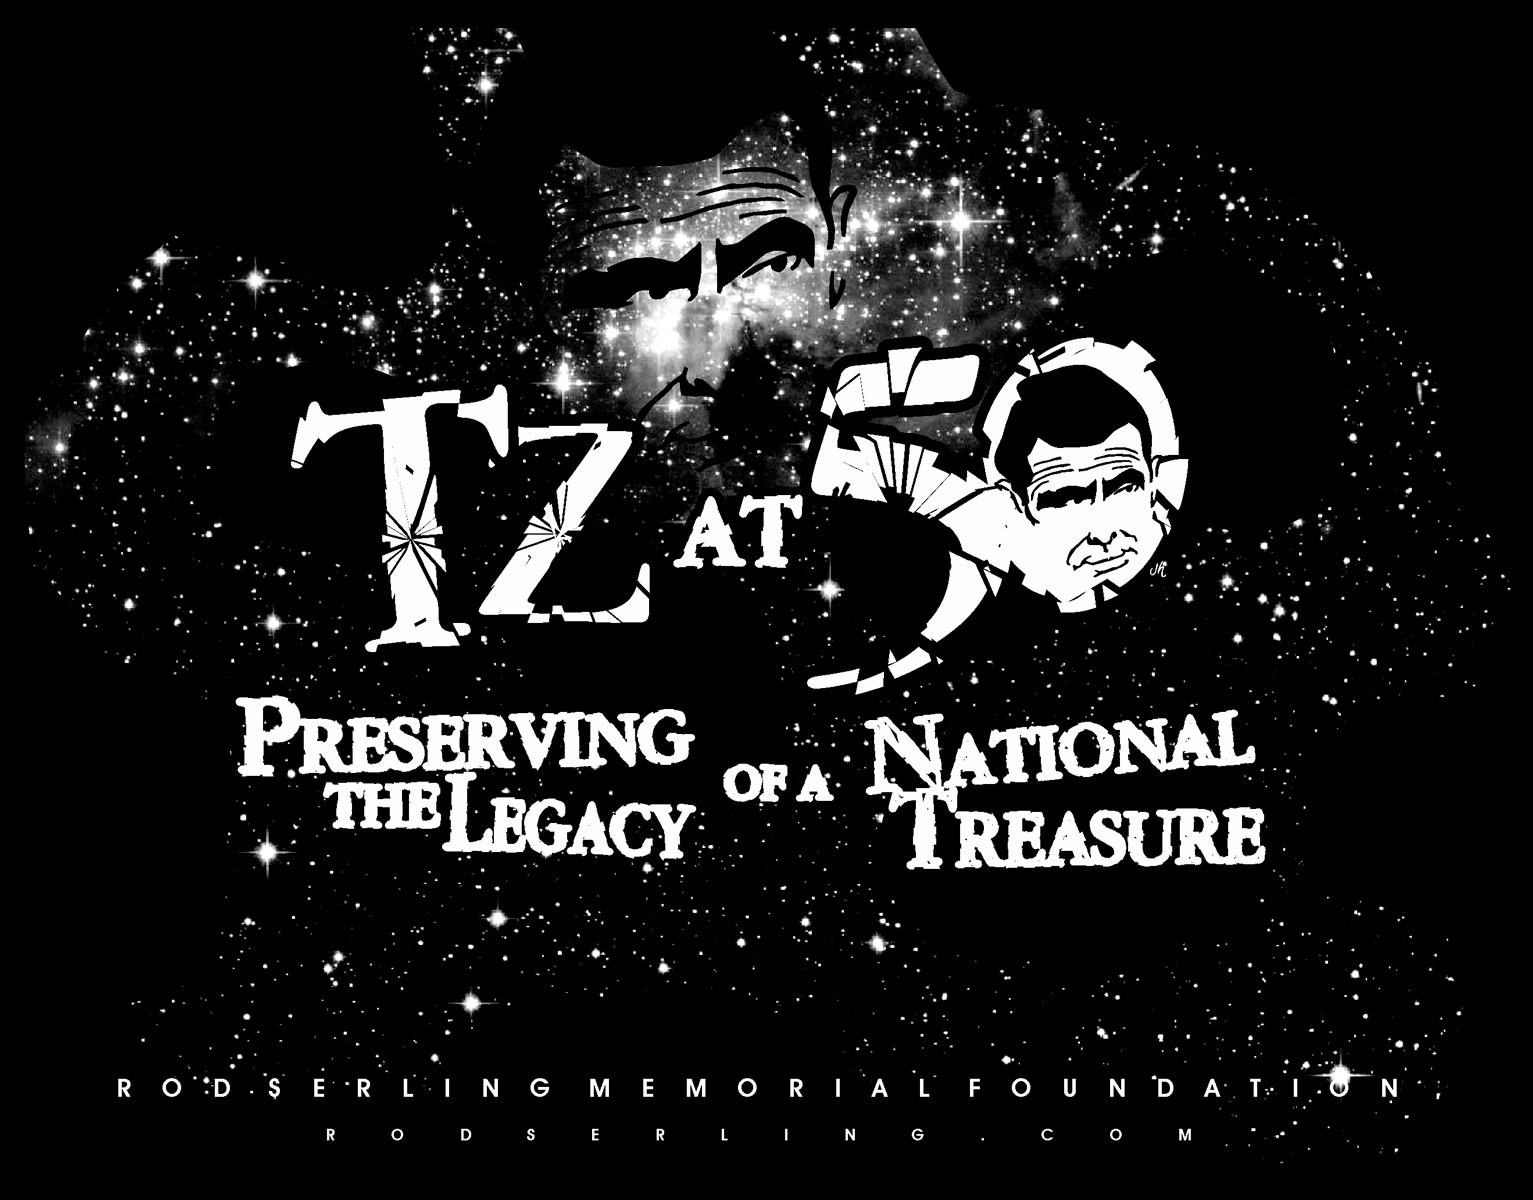 Rod Serling Foundation Ad 1